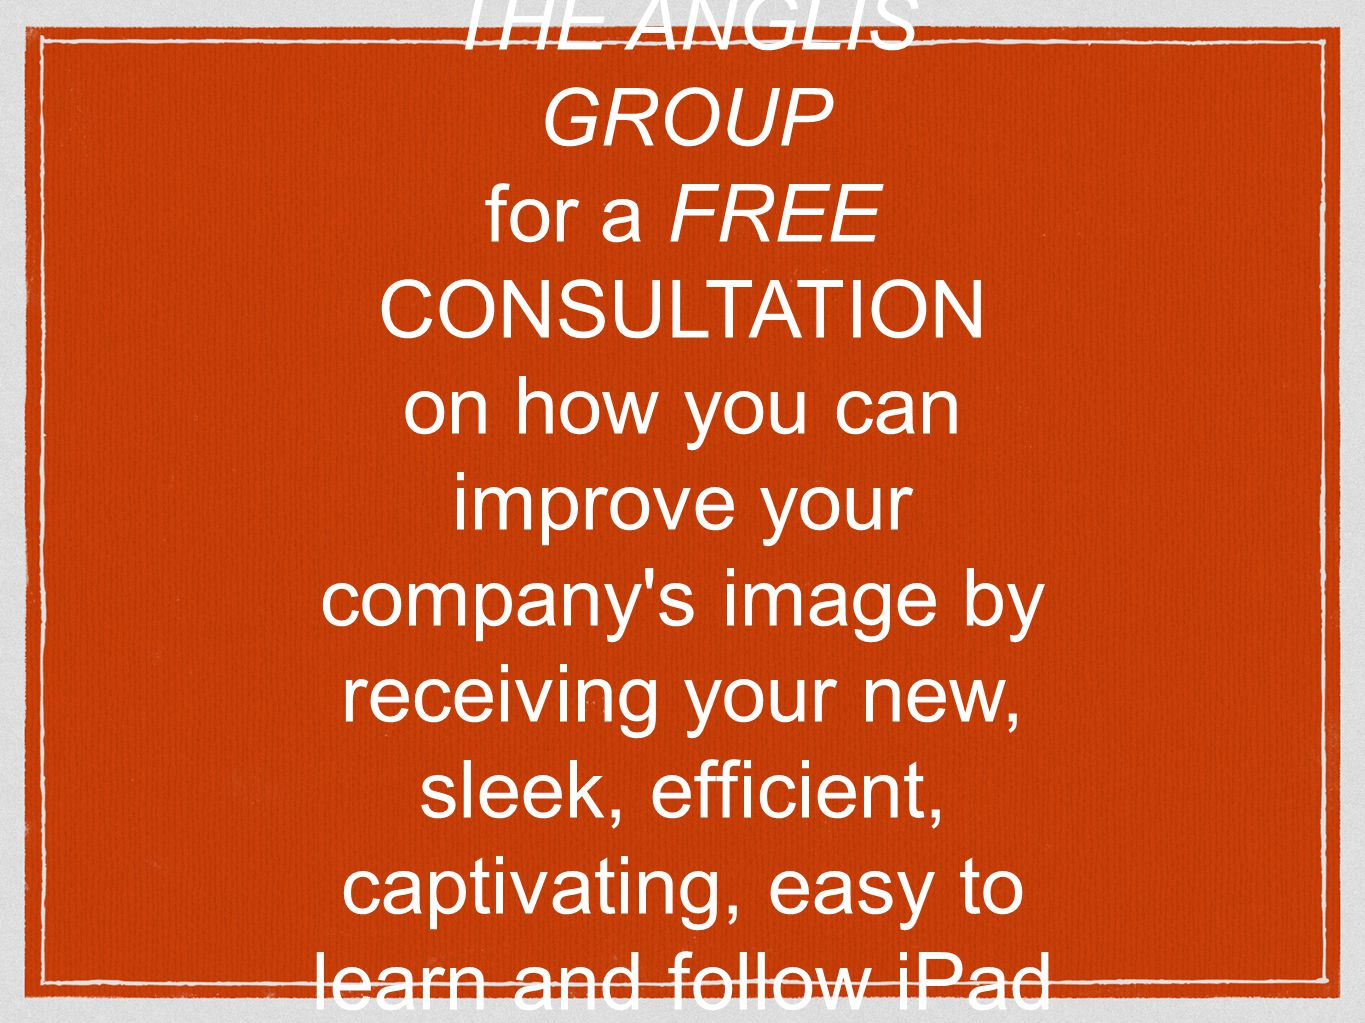 Or you could simply contact THE ANGLIS GROUP for a FREE CONSULTATION on how you can improve your company s image by receiving your new, sleek, efficient, captivating, easy to learn and follow iPad presentation in less than 30 days!